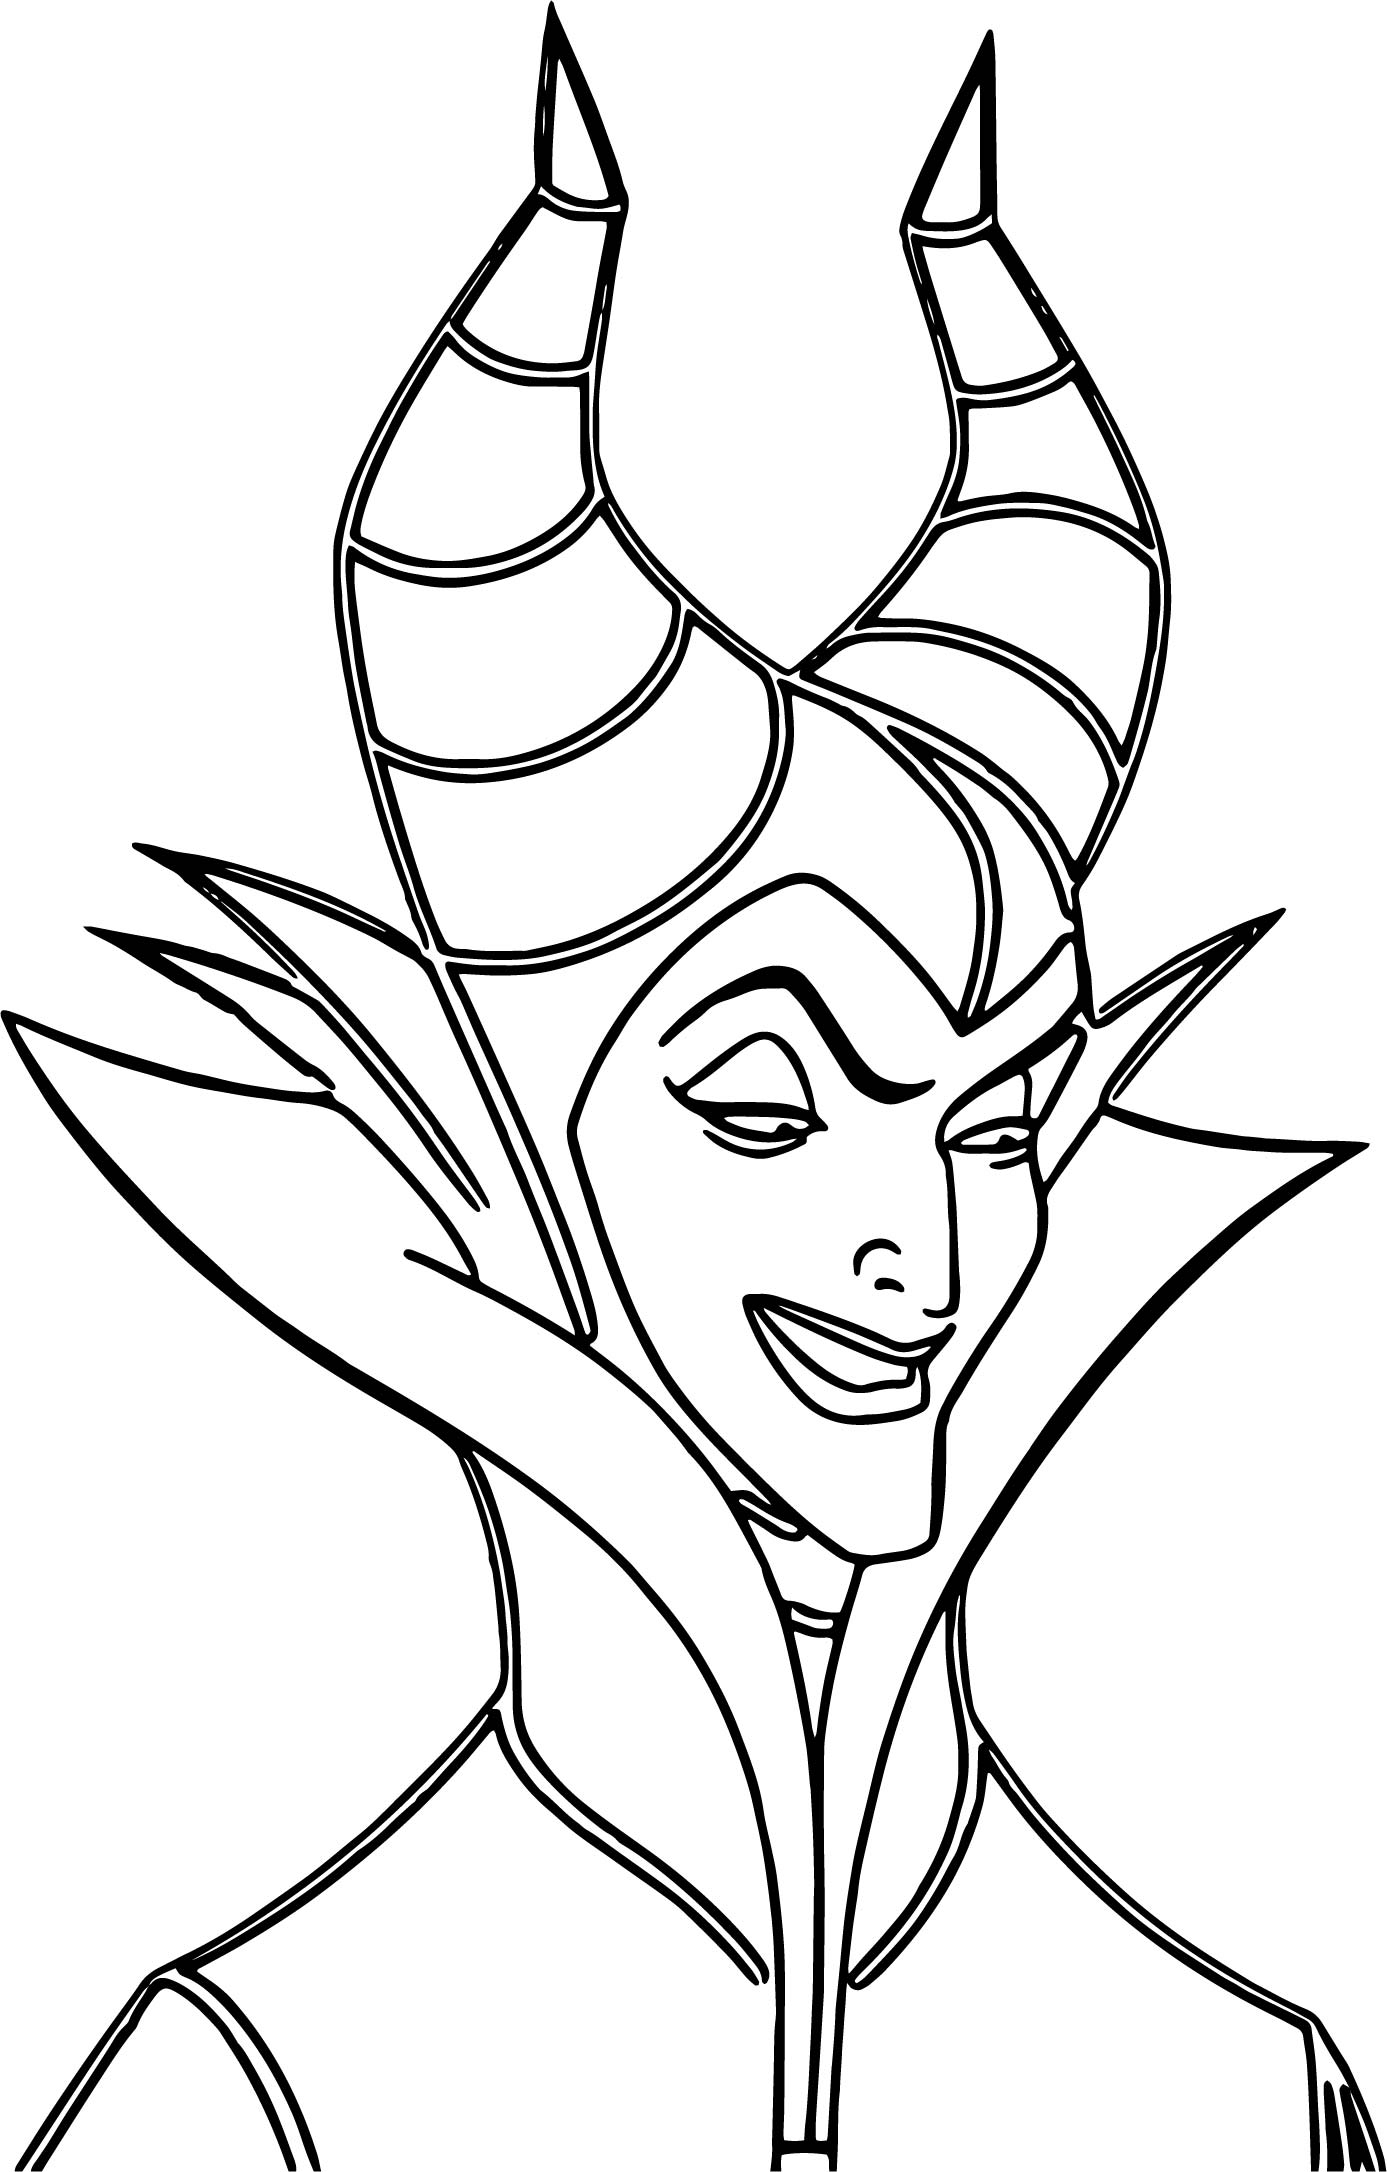 Evil Princess Coloring Pages : Maleficent evil cartoon coloring page wecoloringpage